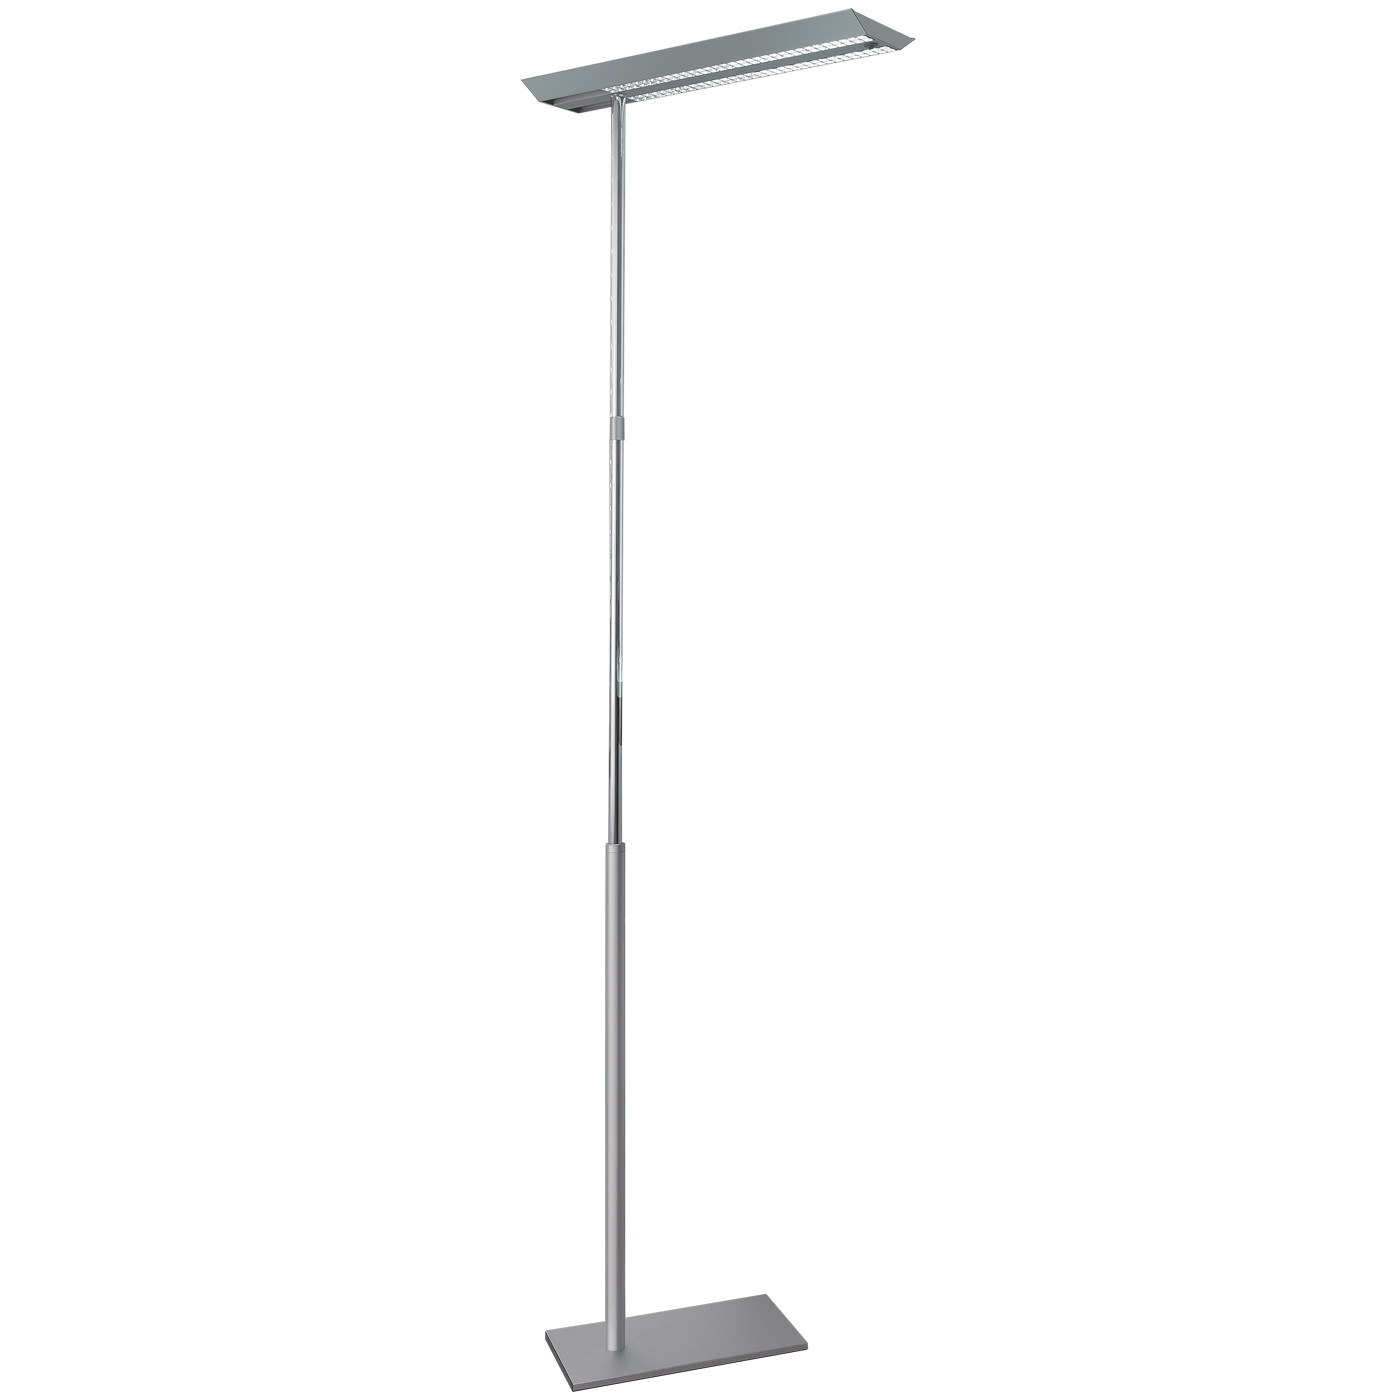 Baltensweiler Eco LED S